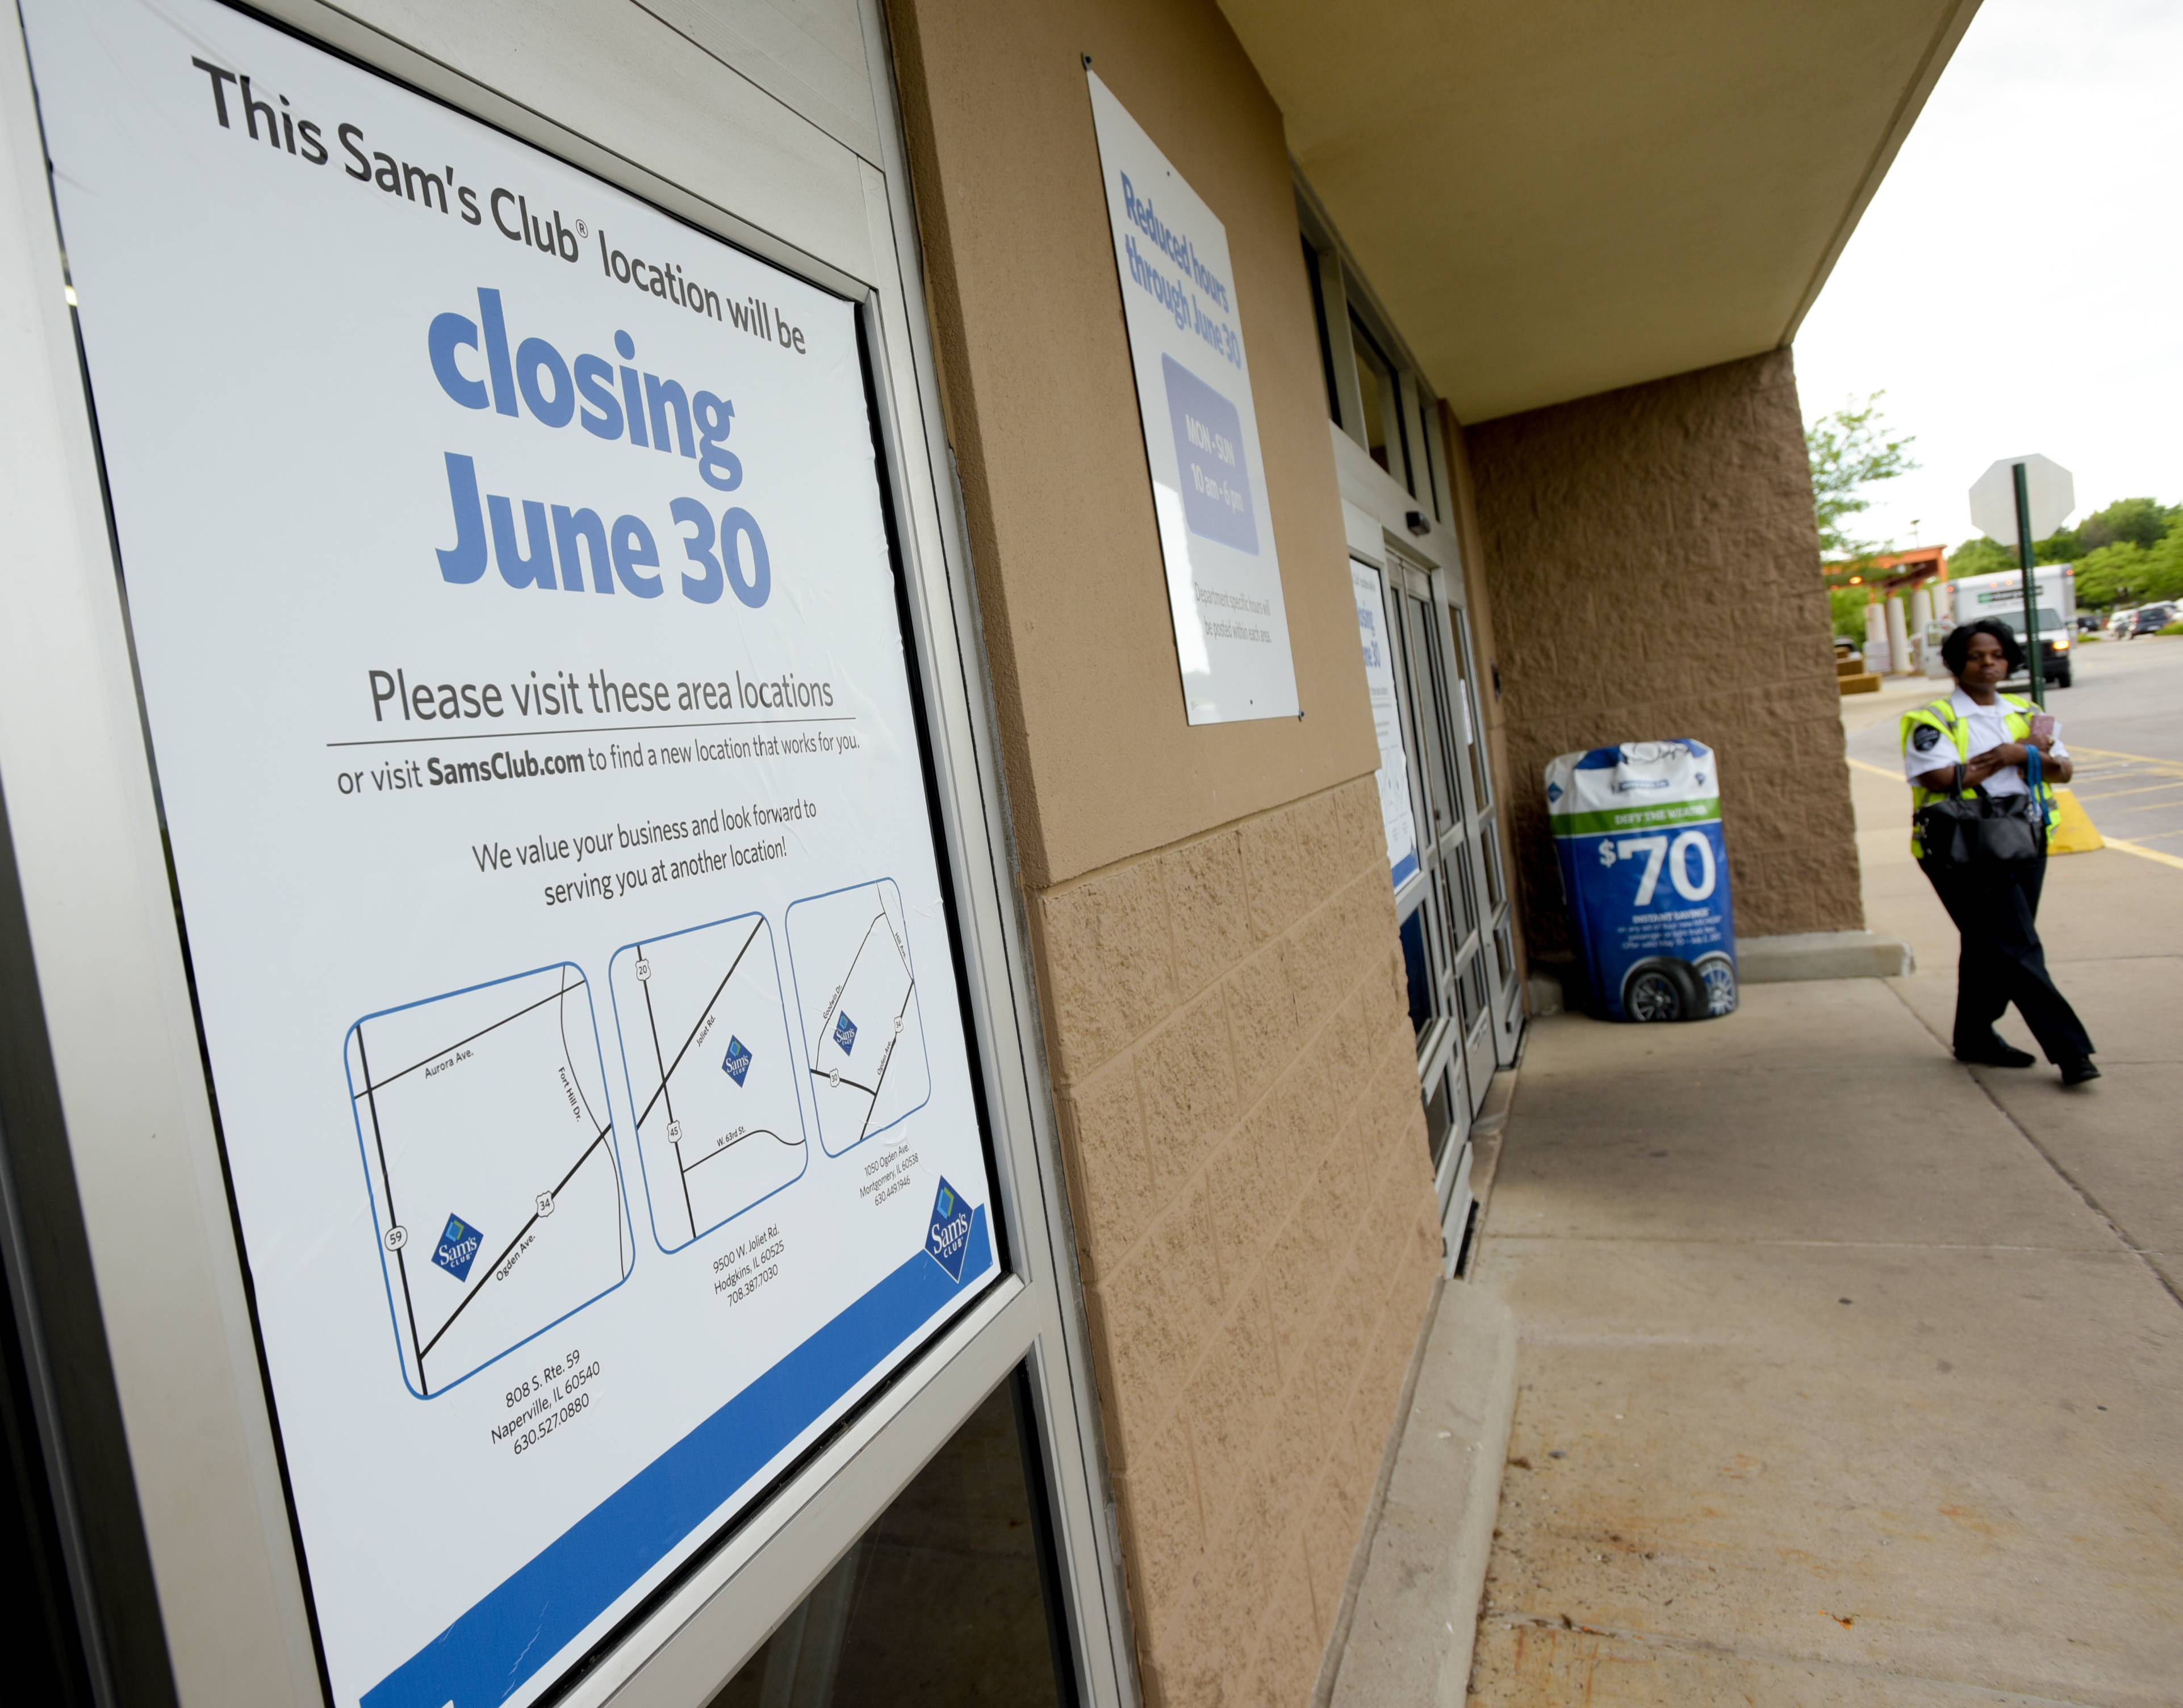 The Woodridge Sam's Club was closed Wednesday while employees were informed the store will close permanently on June 30. The store in the meantime will reopen for business Thursday.